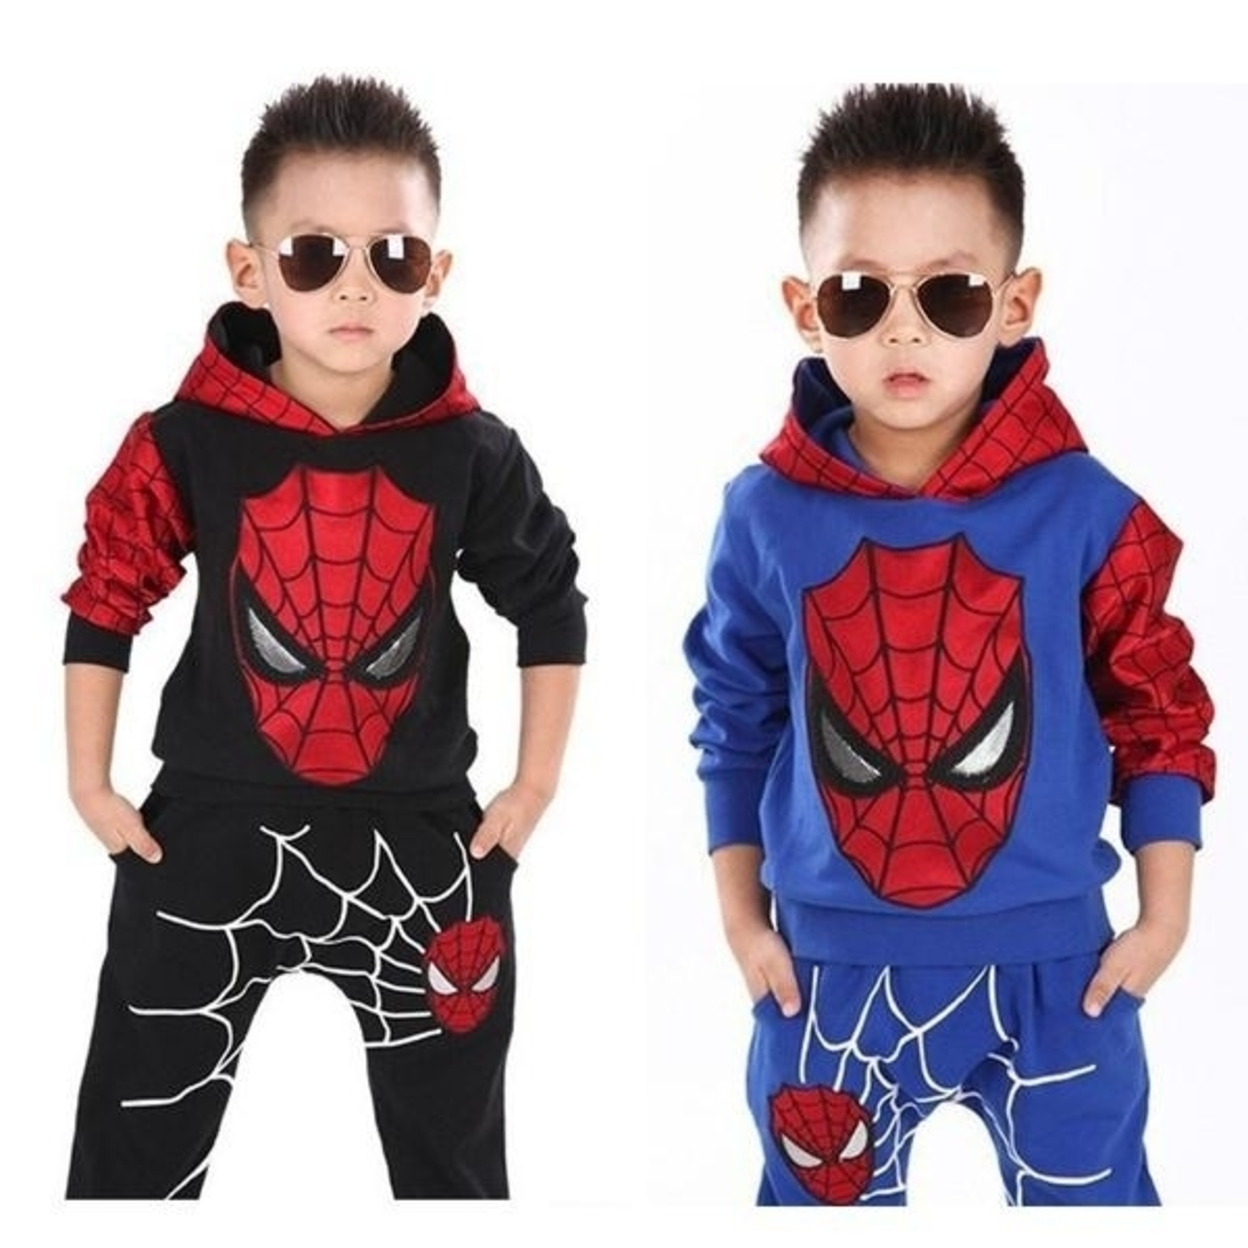 Classic Child Costume Sports Suit 2 Pieces Set Tracksuits Boys Clothing Sets Coat+Pant - Black, 100 - 3T 598e9e22ef85265c0c7d2c0e